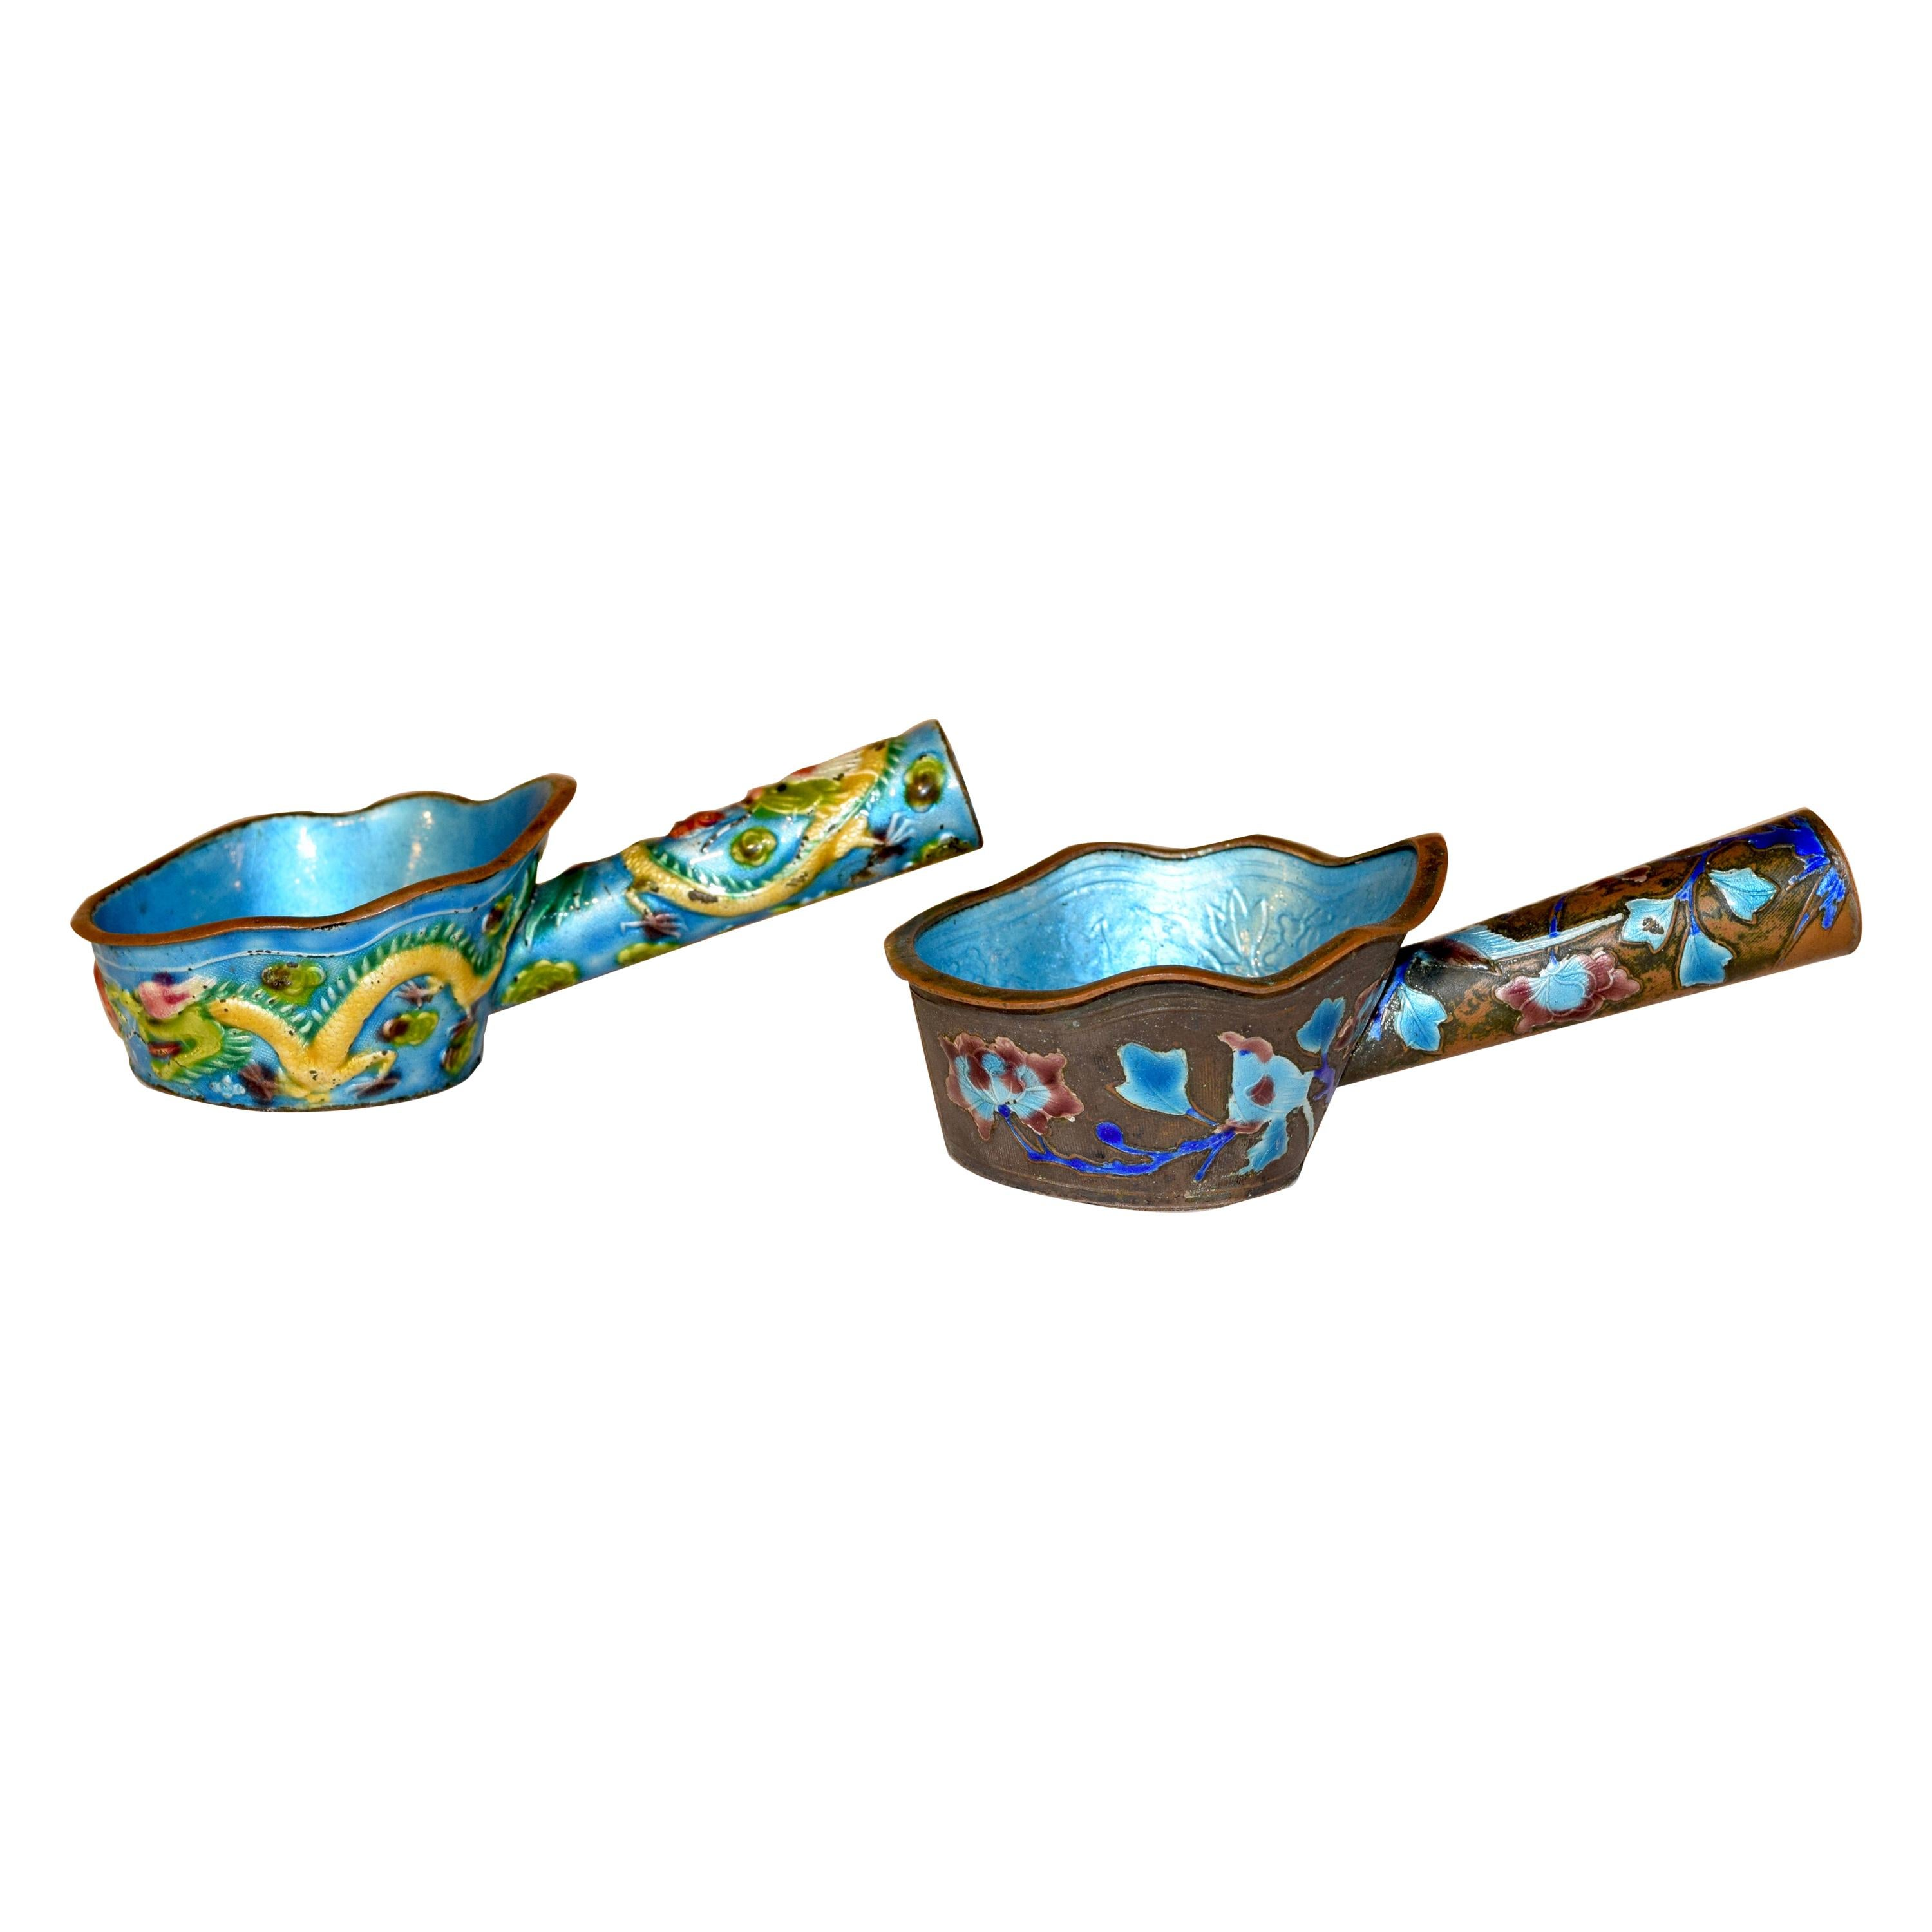 Pair of 19th Century Chinese Enameled Ladles